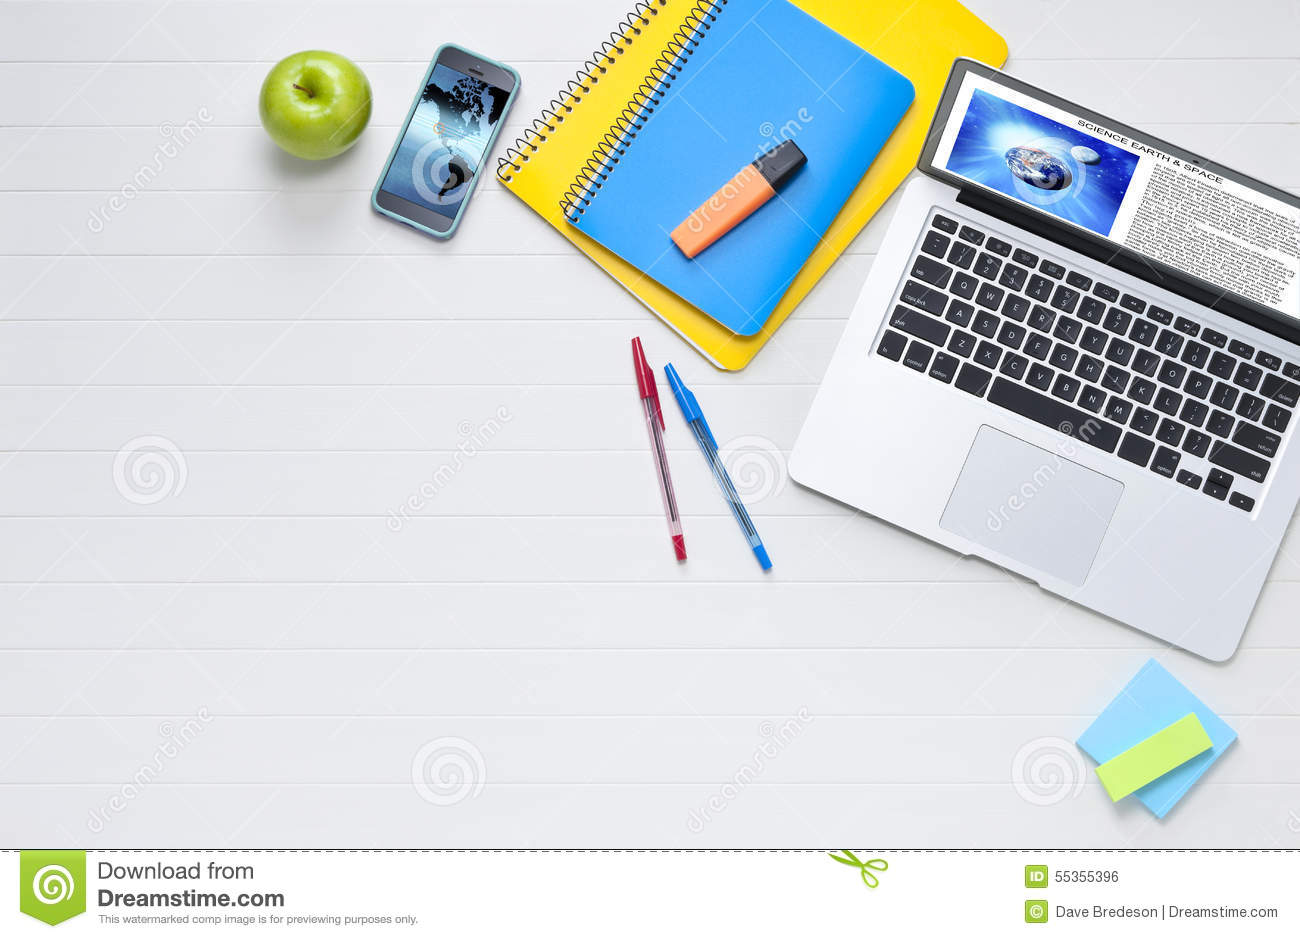 Maxalto moreover 24713 as well Stock Images D Man Working  puter White Background Image39800034 furthermore Watch further Belkin Ether  Skype Phone Philips VOIP. on office max desk